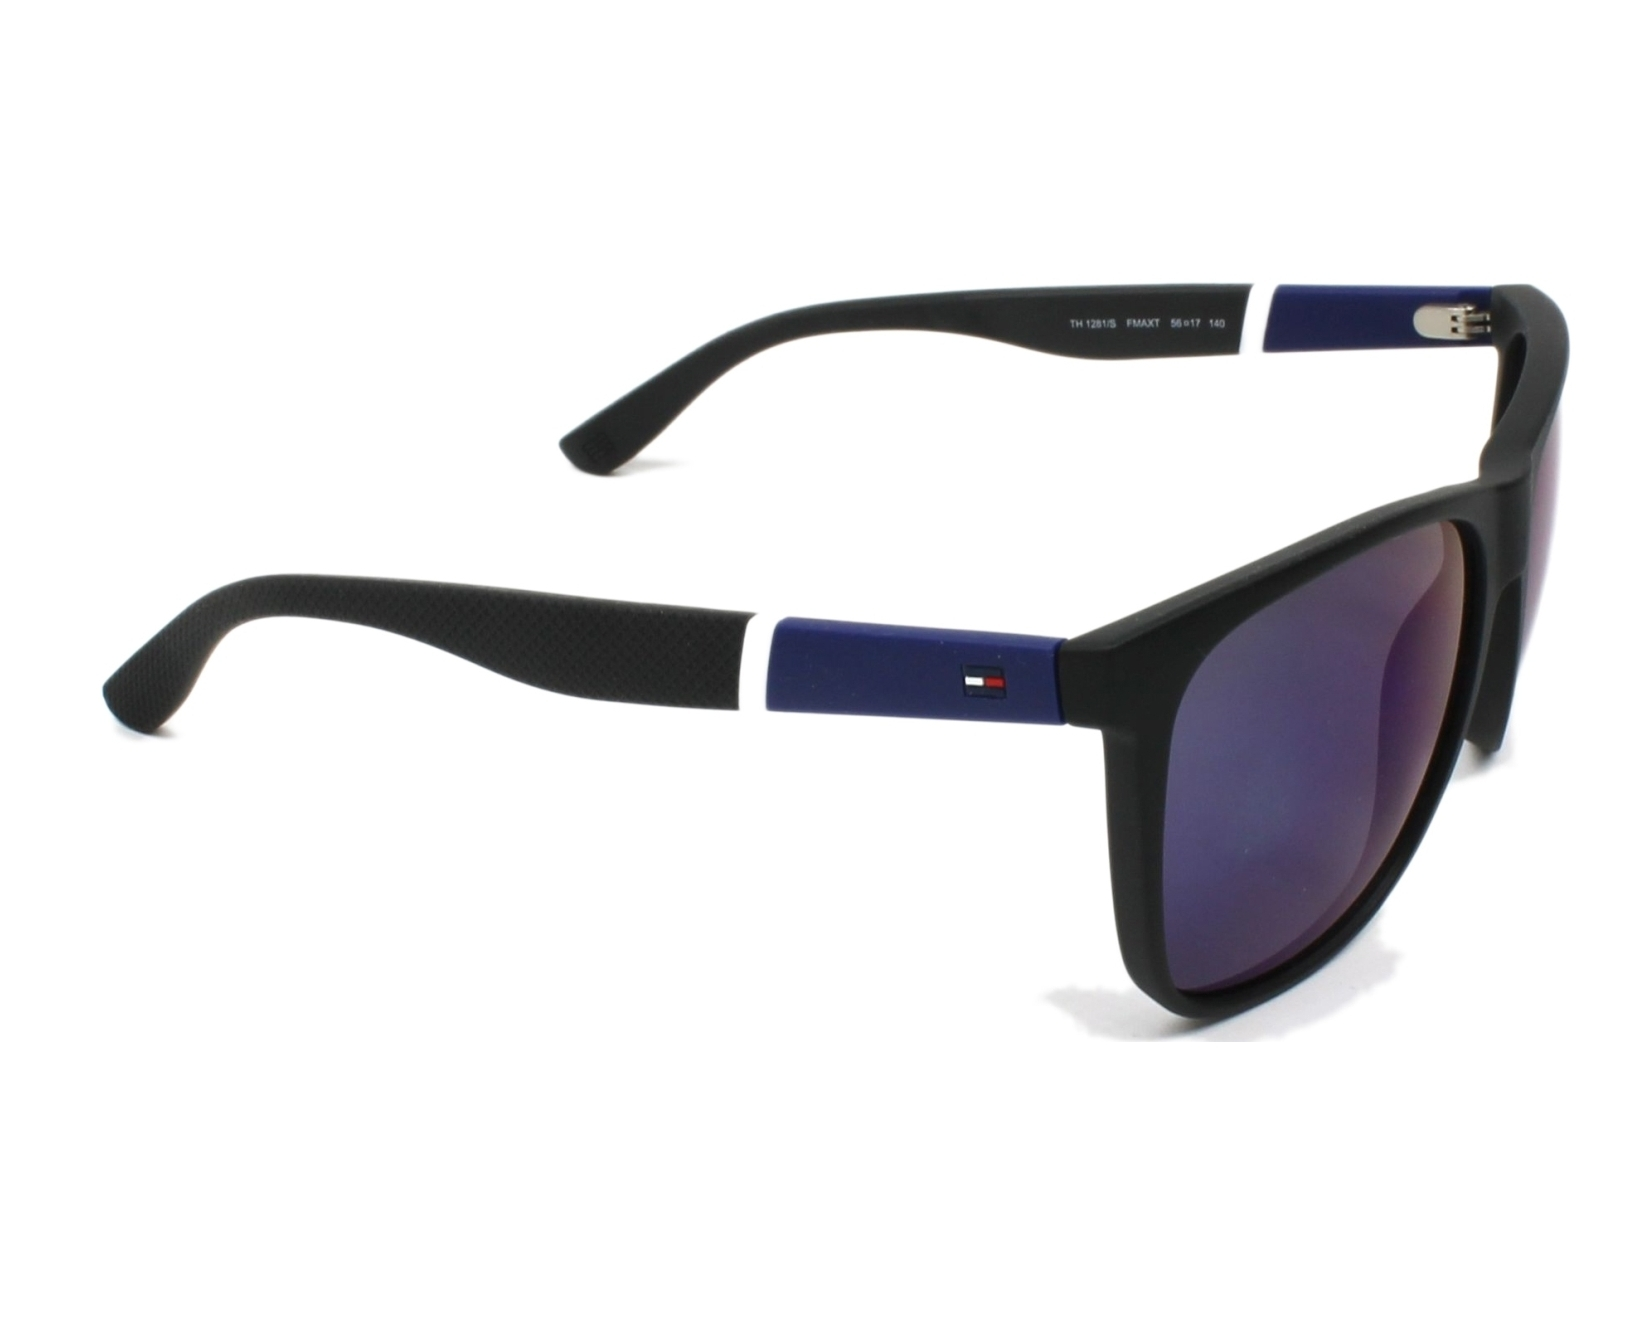 thumbnail Sunglasses Tommy Hilfiger TH-1281-S FMA XT - Black side view b2c7672c49